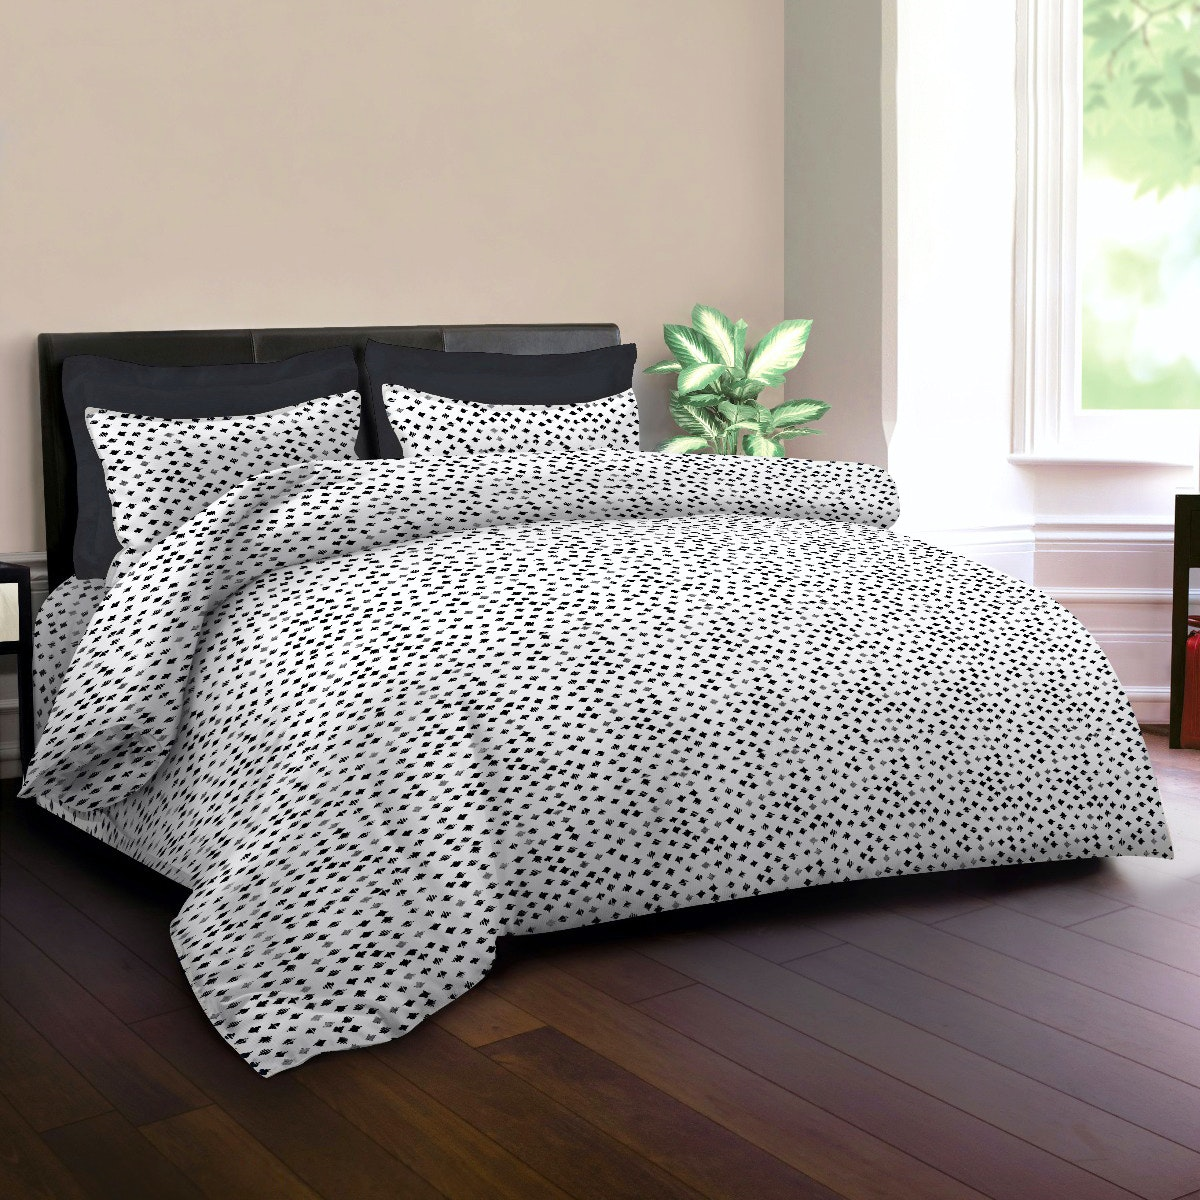 King Rabbit Set Sprei Sarung Bantal Queen Motif Autograph Sign - Hitam Uk 160x200x40 cm